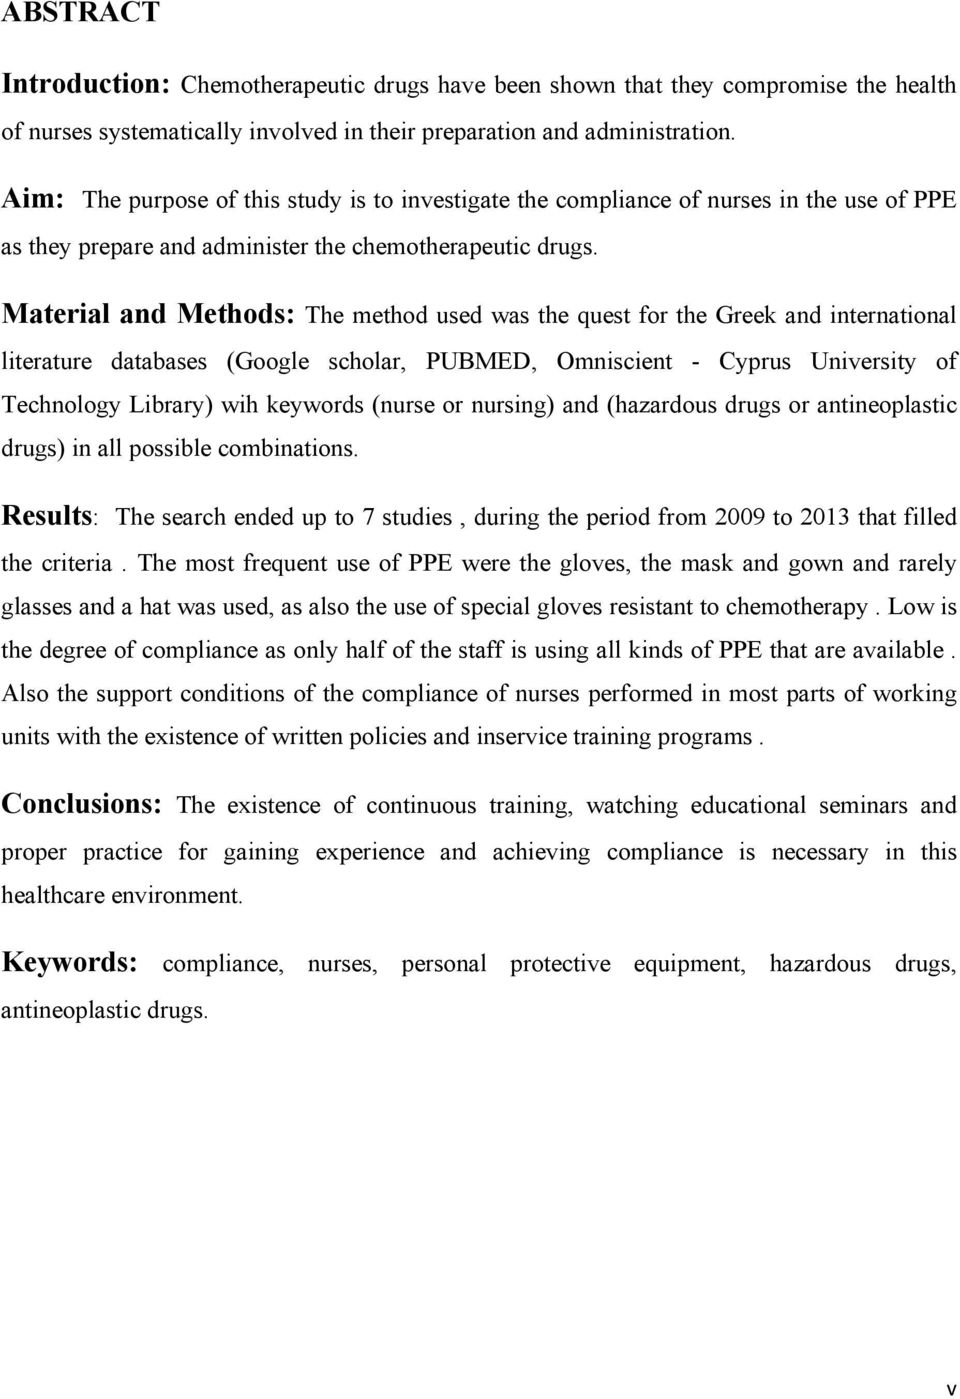 Material and Methods: The method used was the quest for the Greek and international literature databases (Google scholar, PUBMED, Omniscient - Cyprus University of Technology Library) wih keywords